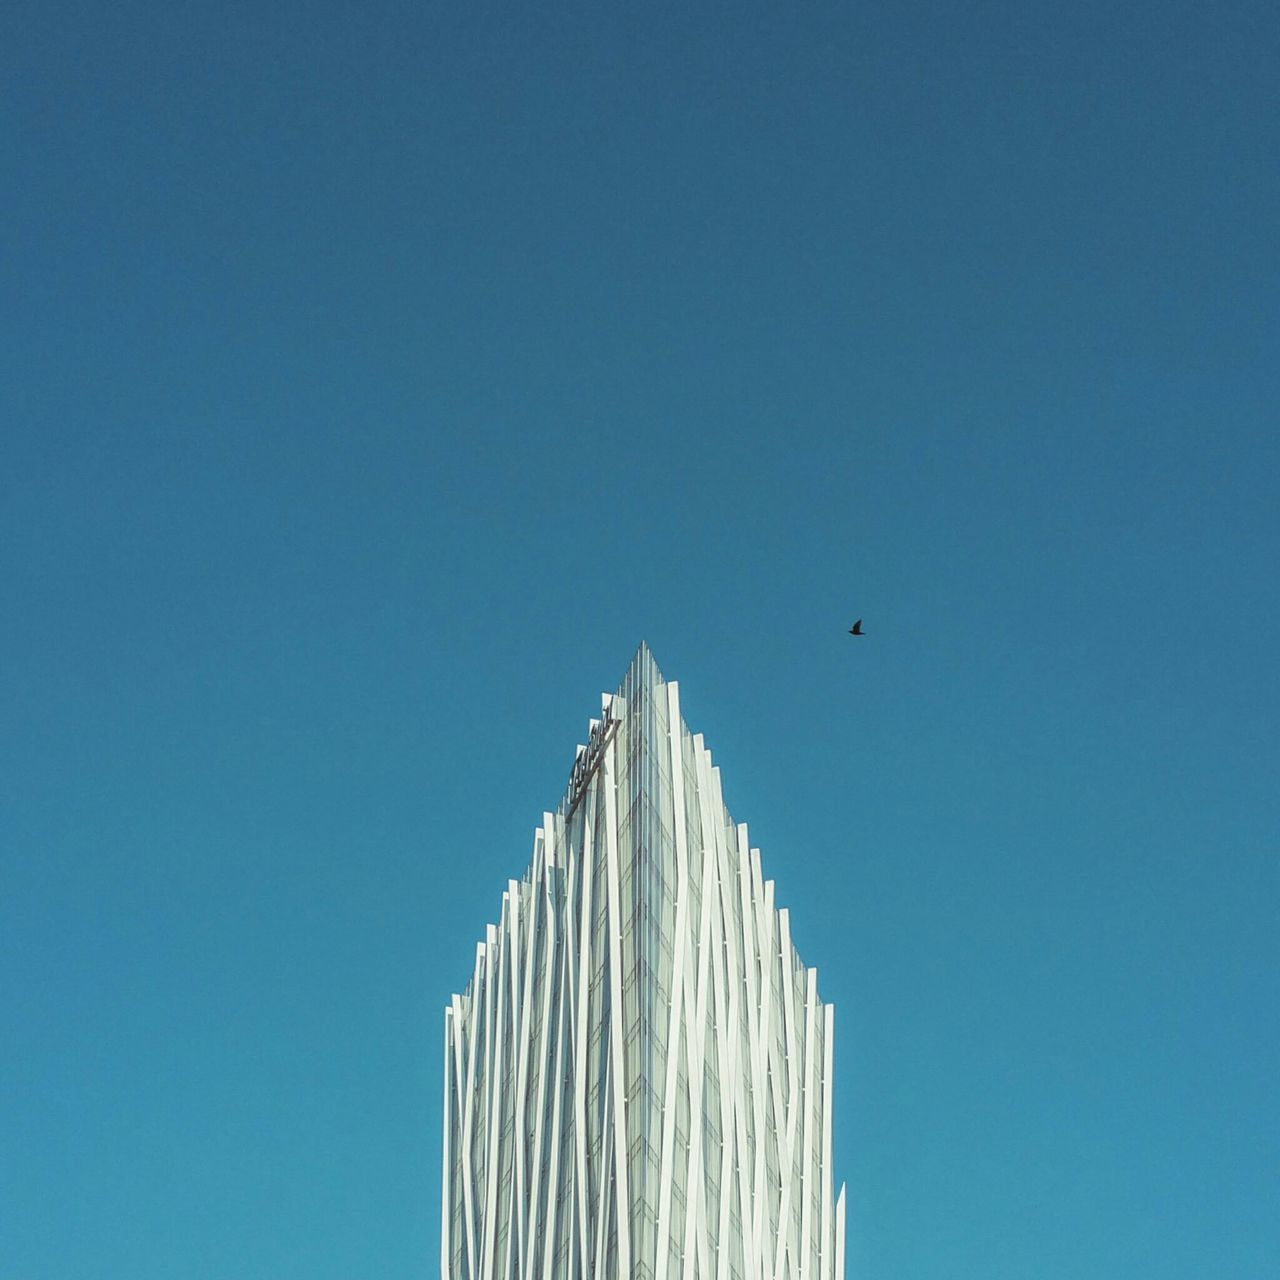 low angle view, clear sky, copy space, architecture, built structure, building exterior, outdoors, day, blue, animals in the wild, one animal, no people, bird, flying, travel destinations, animal themes, sky, spread wings, nature